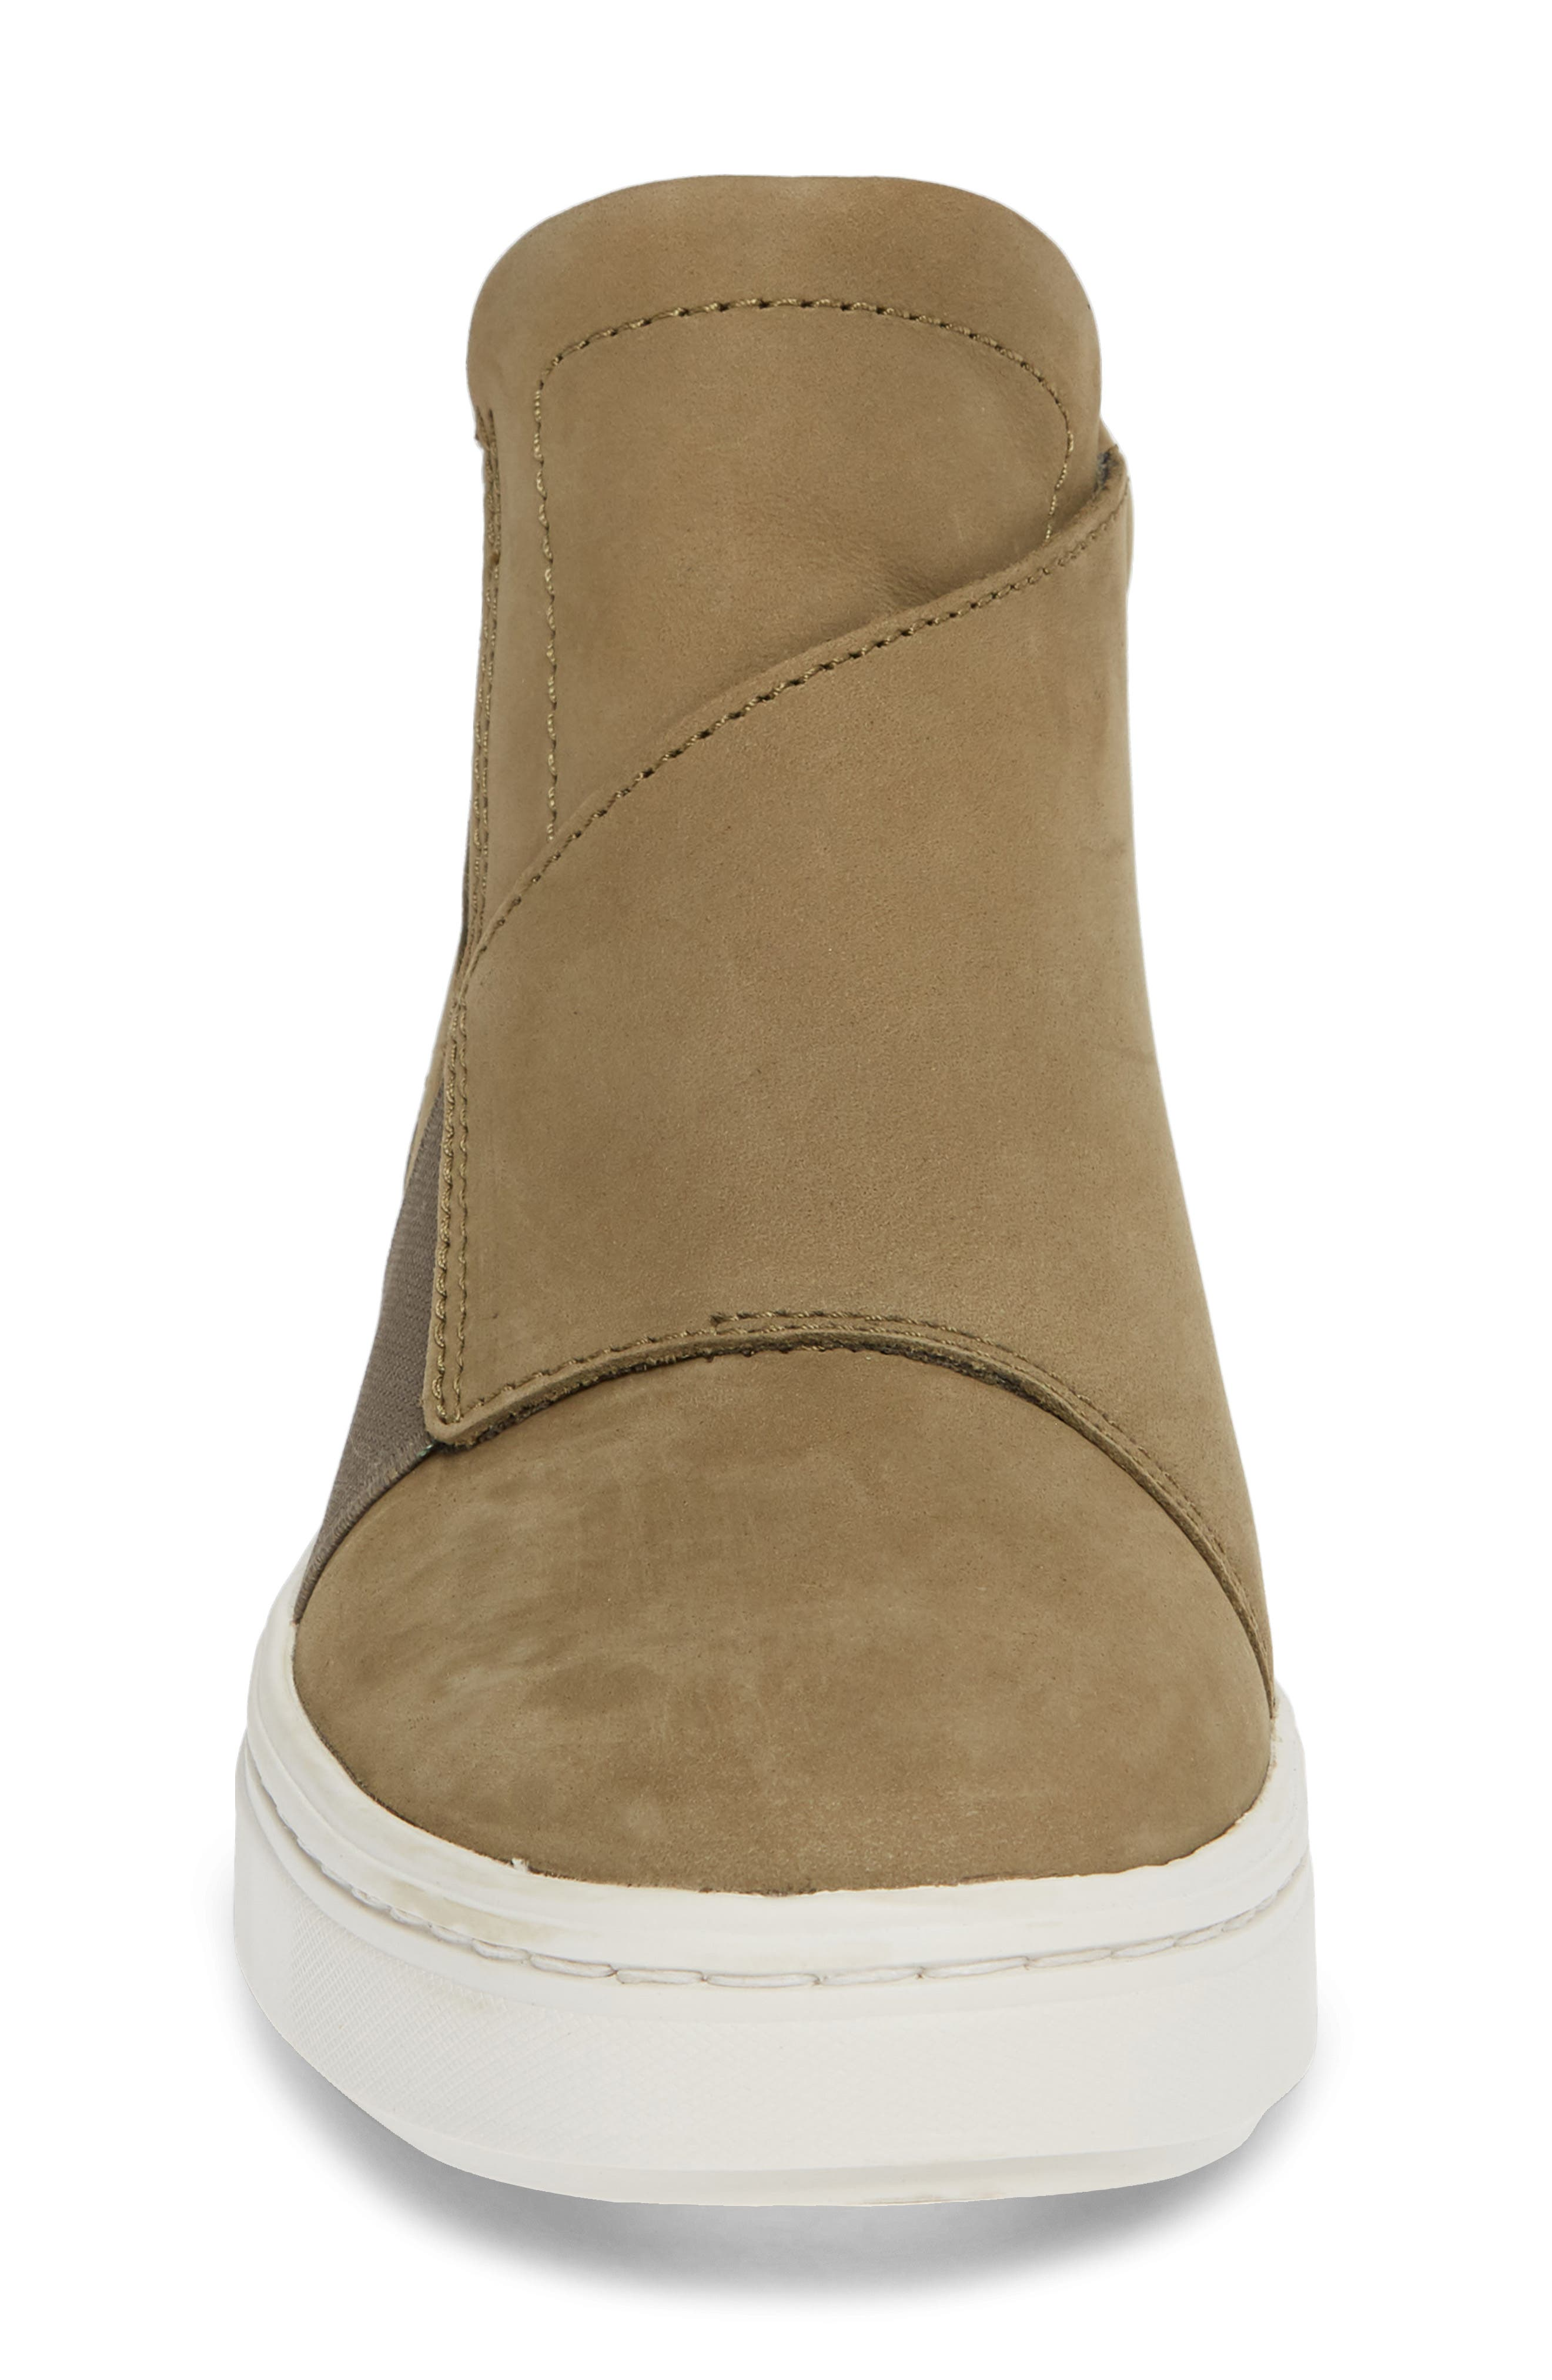 Londyn Chelsea Sneaker Boot,                             Alternate thumbnail 4, color,                             330